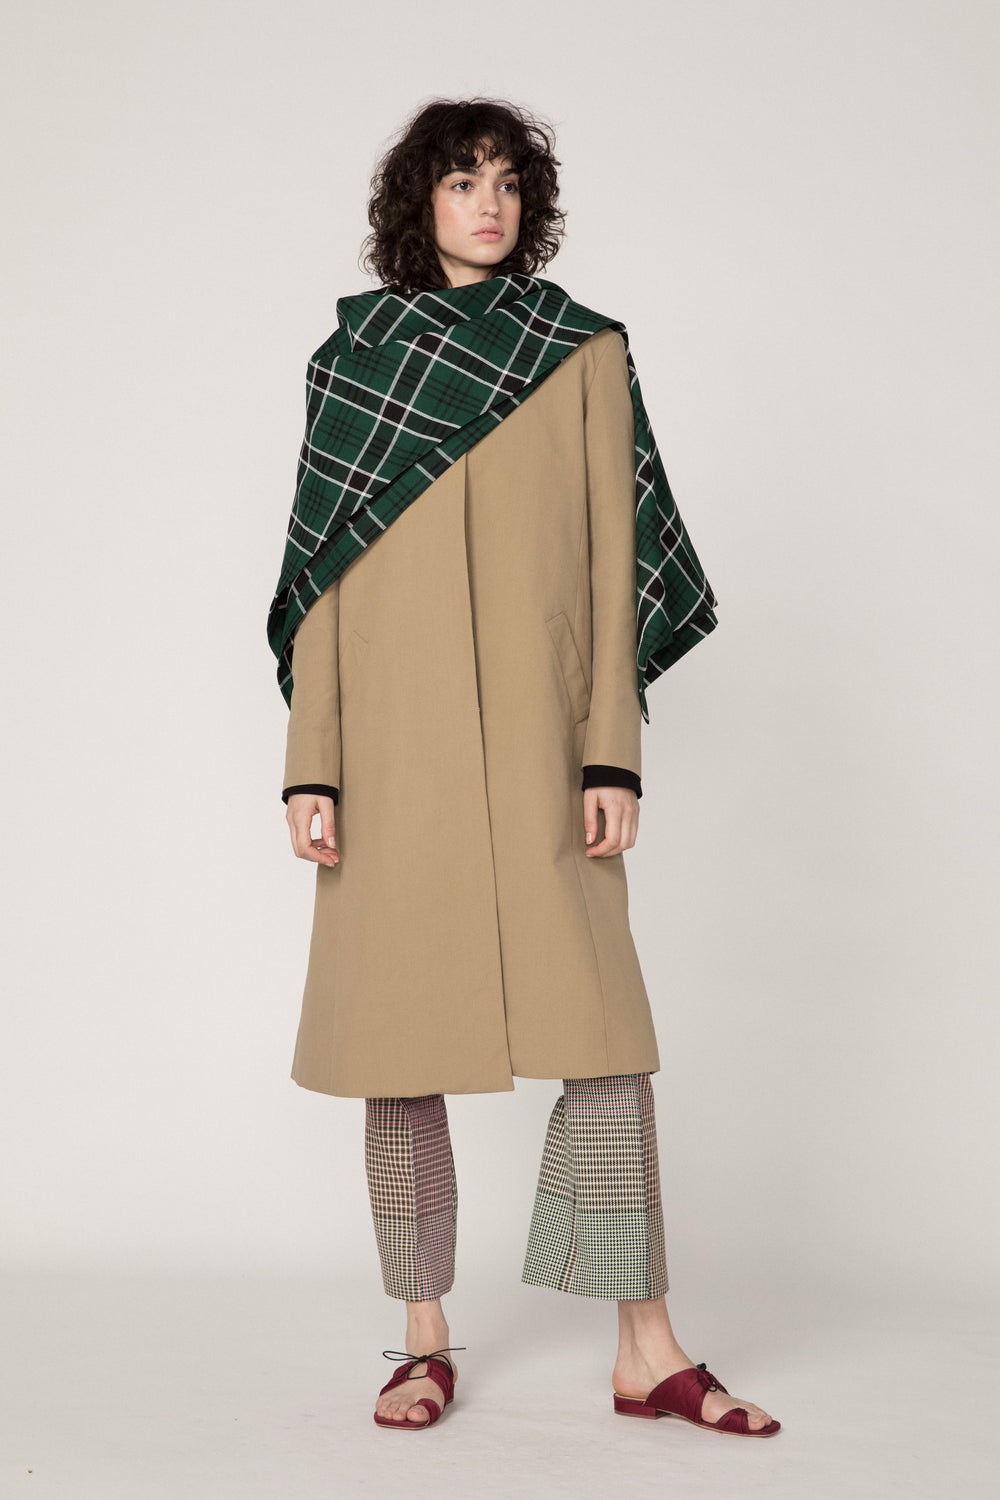 Rosie Assoulin Fall 2019 Shawl Coat. Khaki coat with draped shawl. High neck. Collarless. Split seam in back. Khaki. 100% Cotton. Sizes 0 -12.